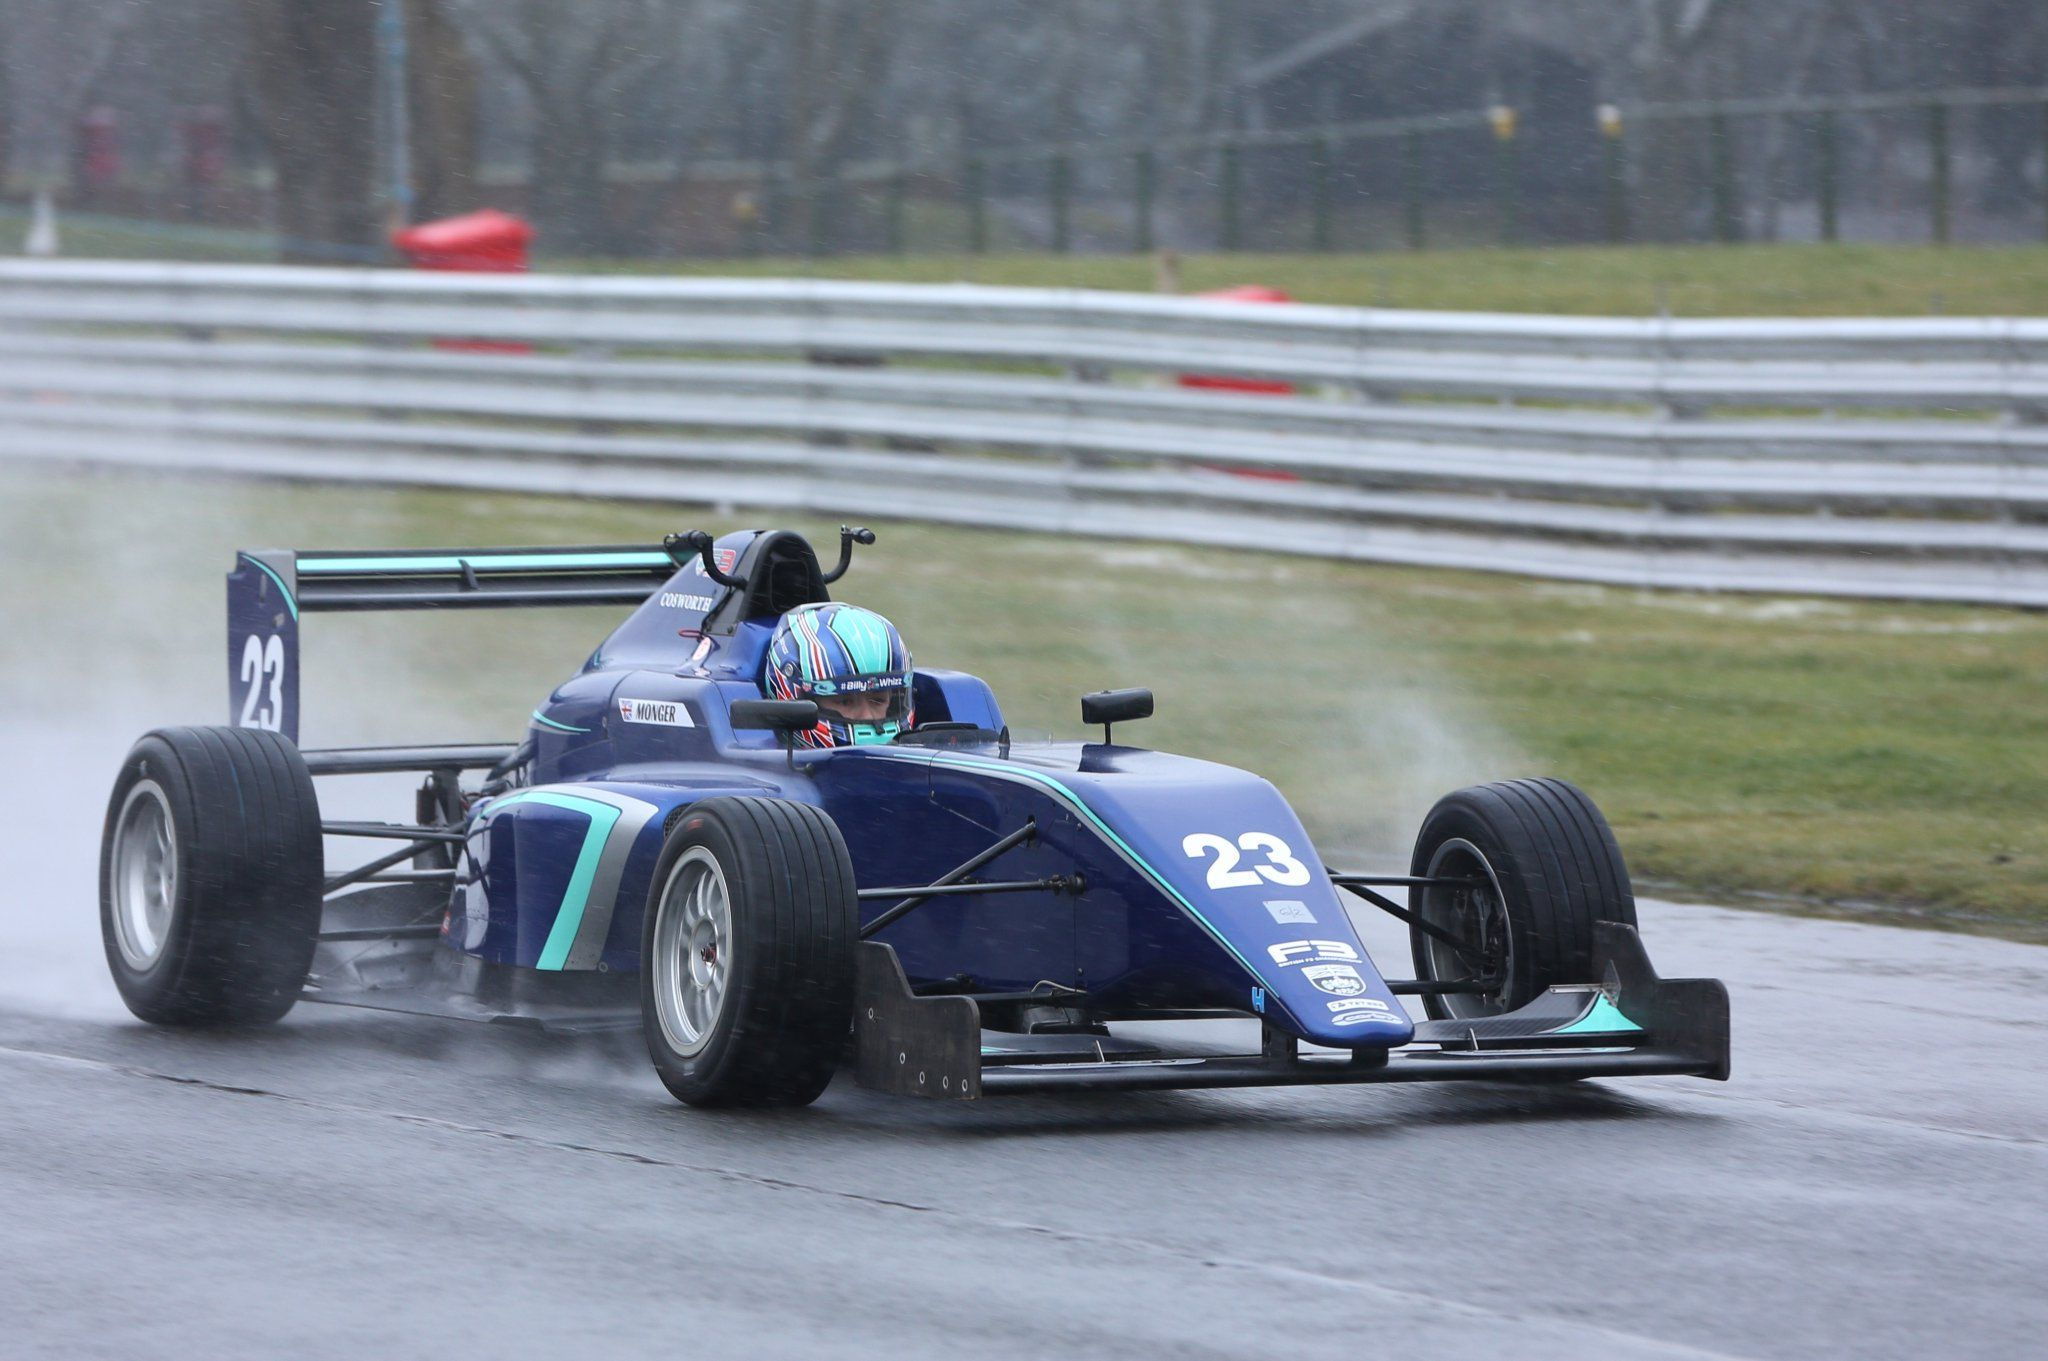 Billy Monger Drives A Single Seater Again Formularapida Net